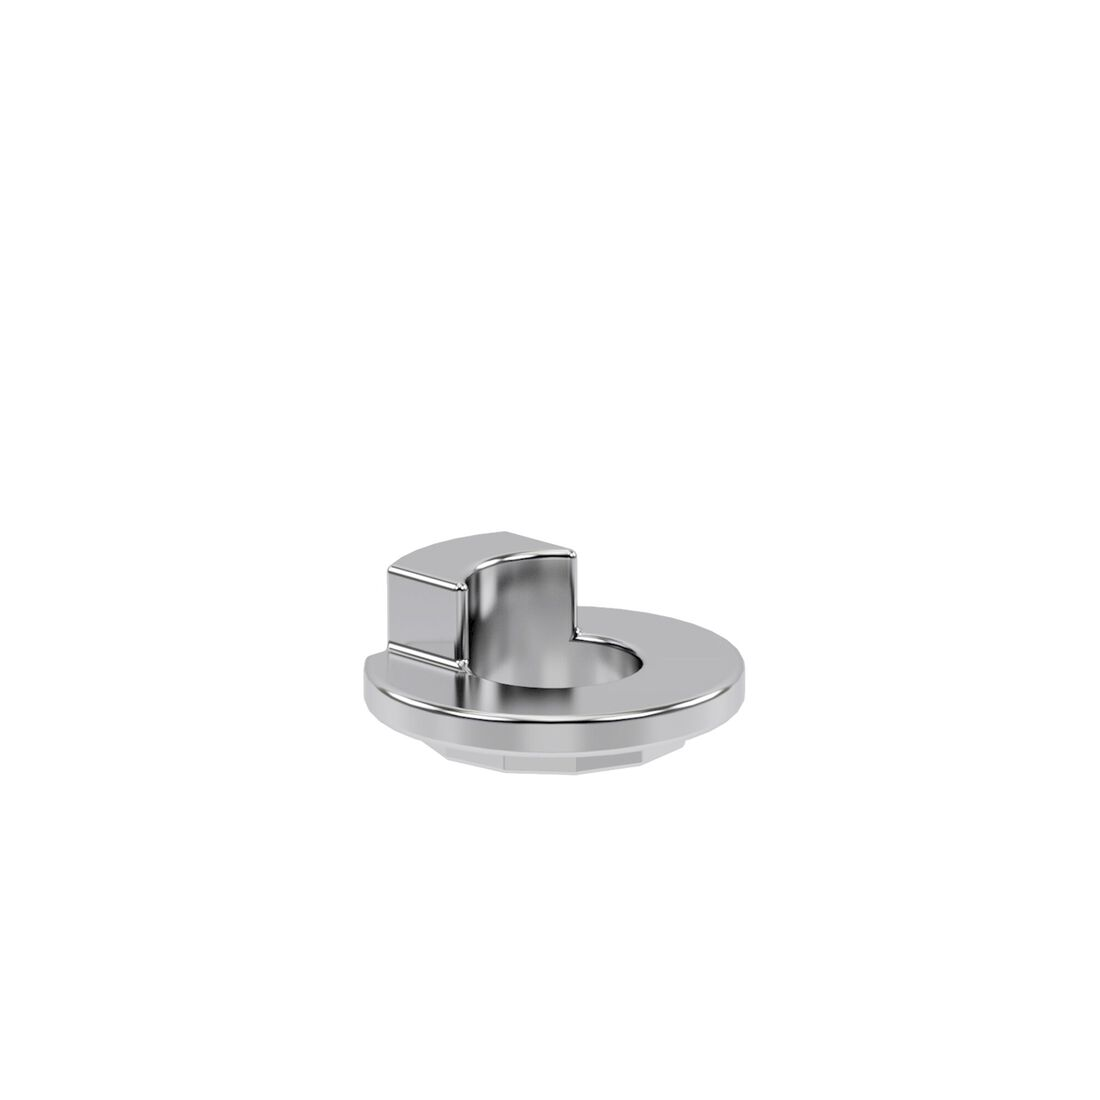 CYBEX Spacer For Solid Axle 2.5 in Silver - 2.5mm large image number 1